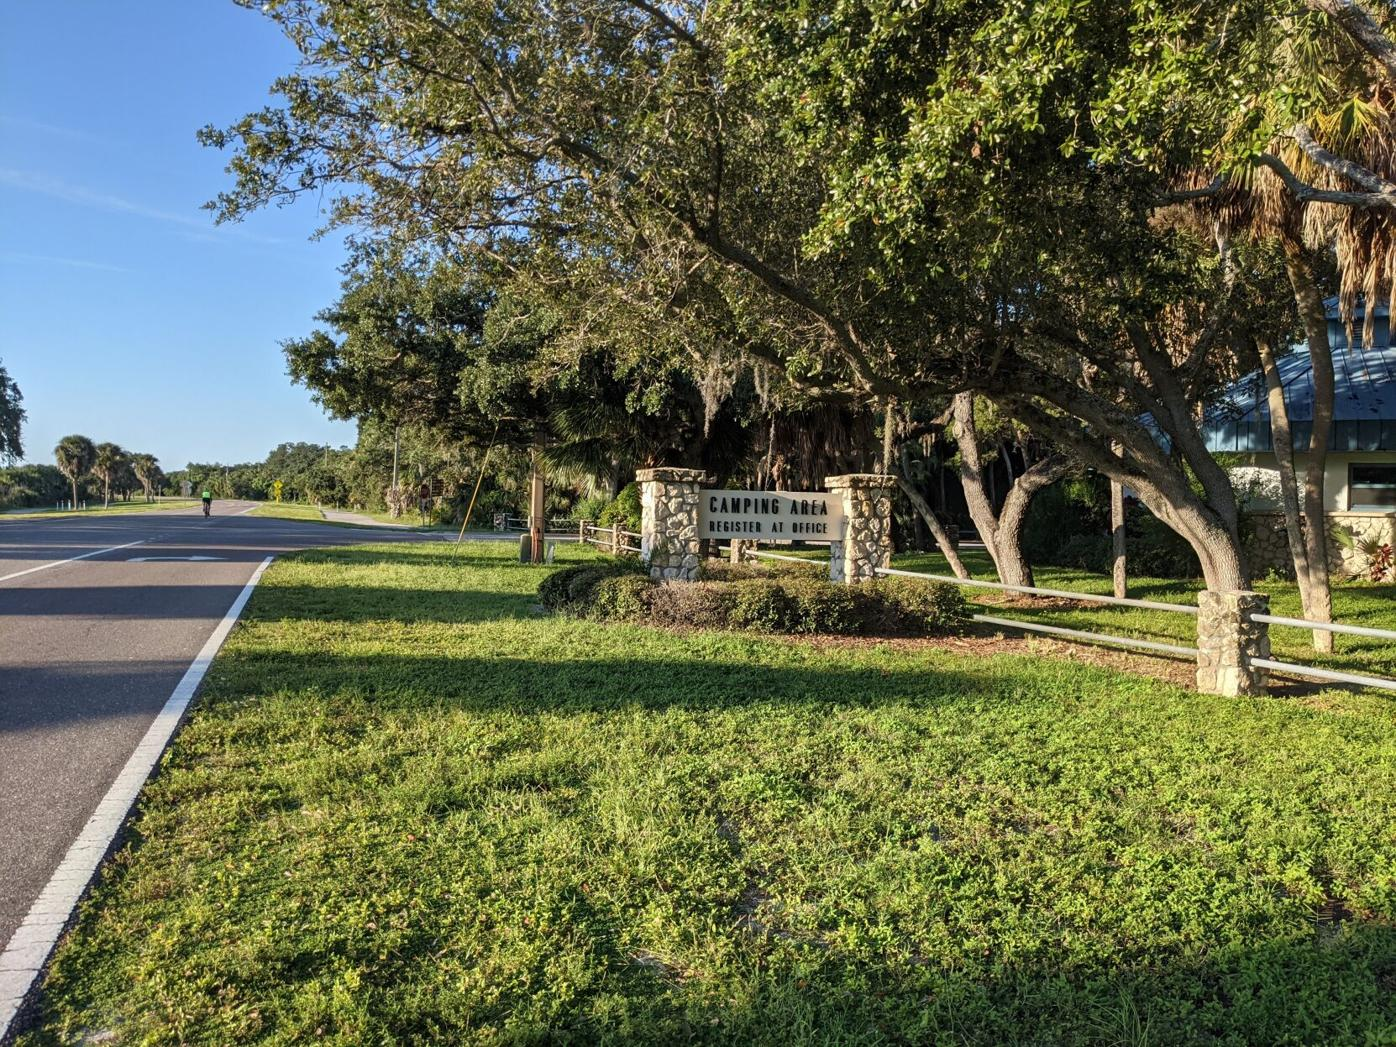 Fort DeSoto Camping Area